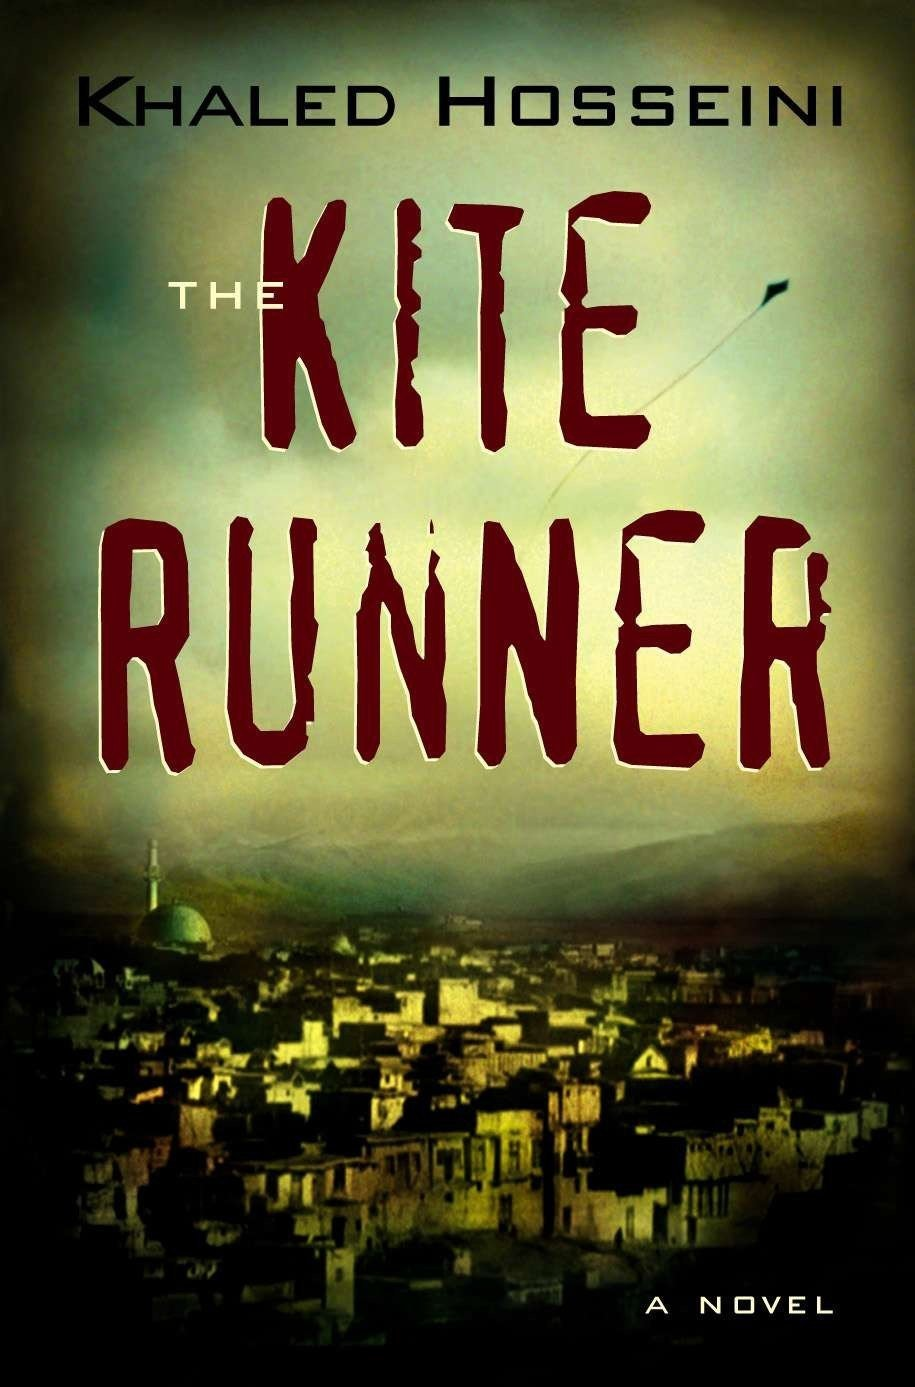 The Kite Runner – Khaled Hosseini